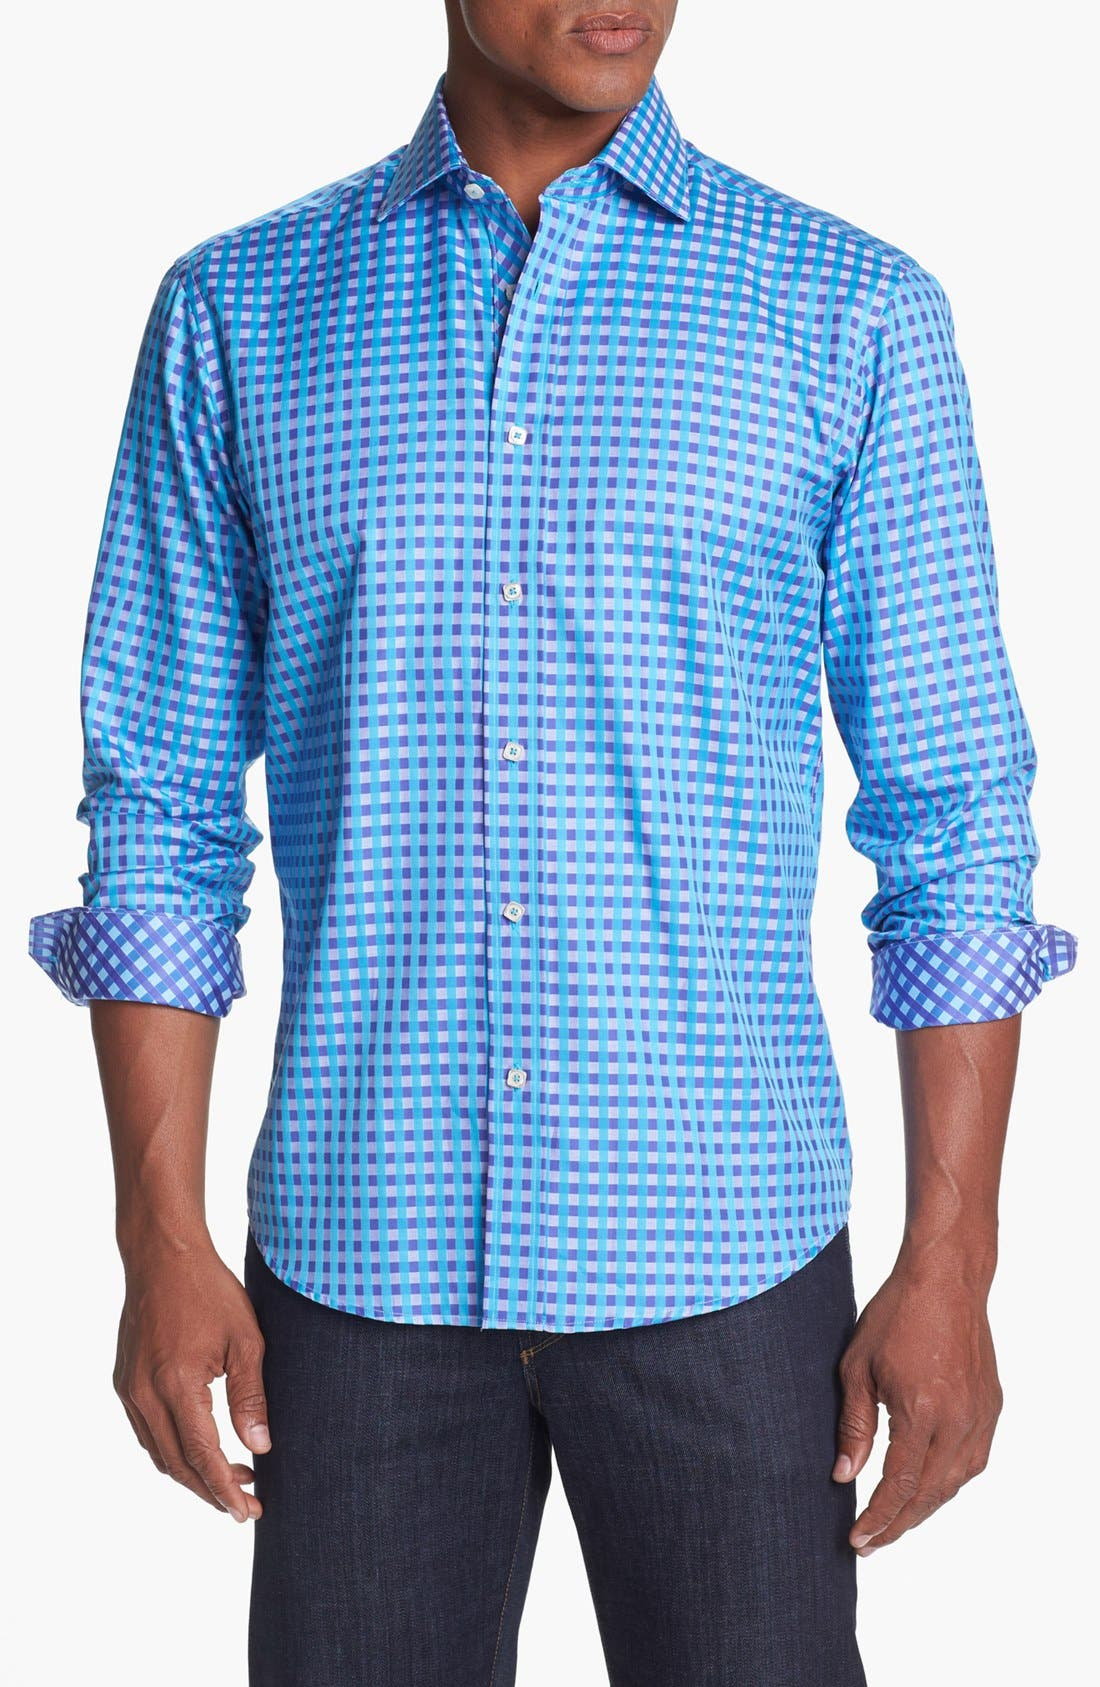 Alternate Image 1 Selected - Bugatchi Gingham Shaped Fit Cotton Sport Shirt (Tall)